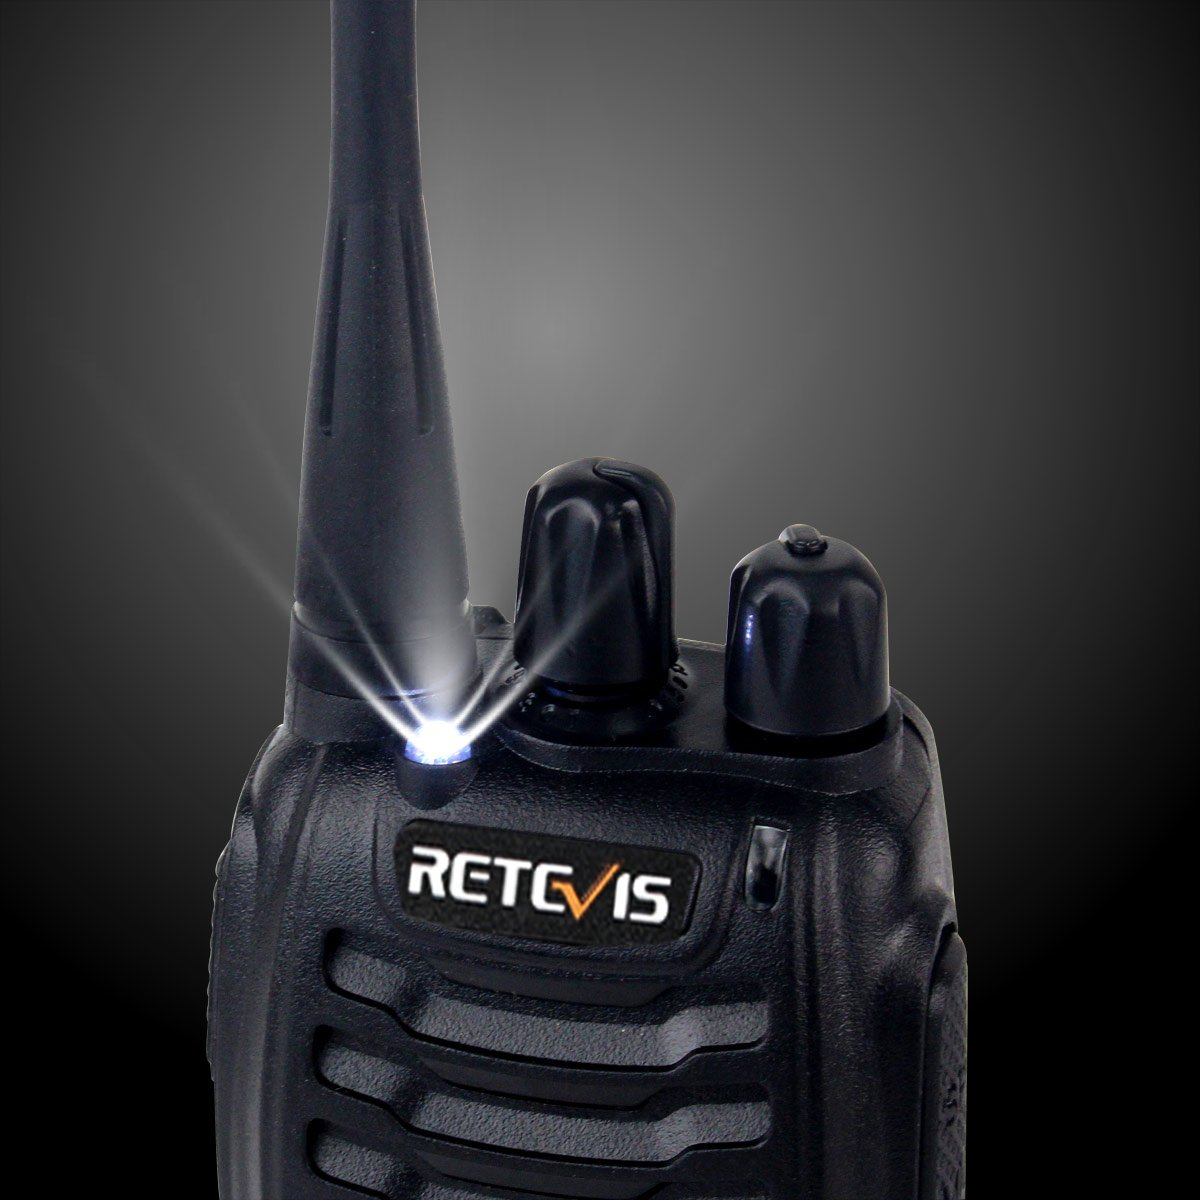 Retevis H-777 Two Way Radio UHF 400-470MHz Signal Frequency Single Band 16 CH Walkie Talkies with Original Earpiece (10 Pack) by Retevis (Image #5)